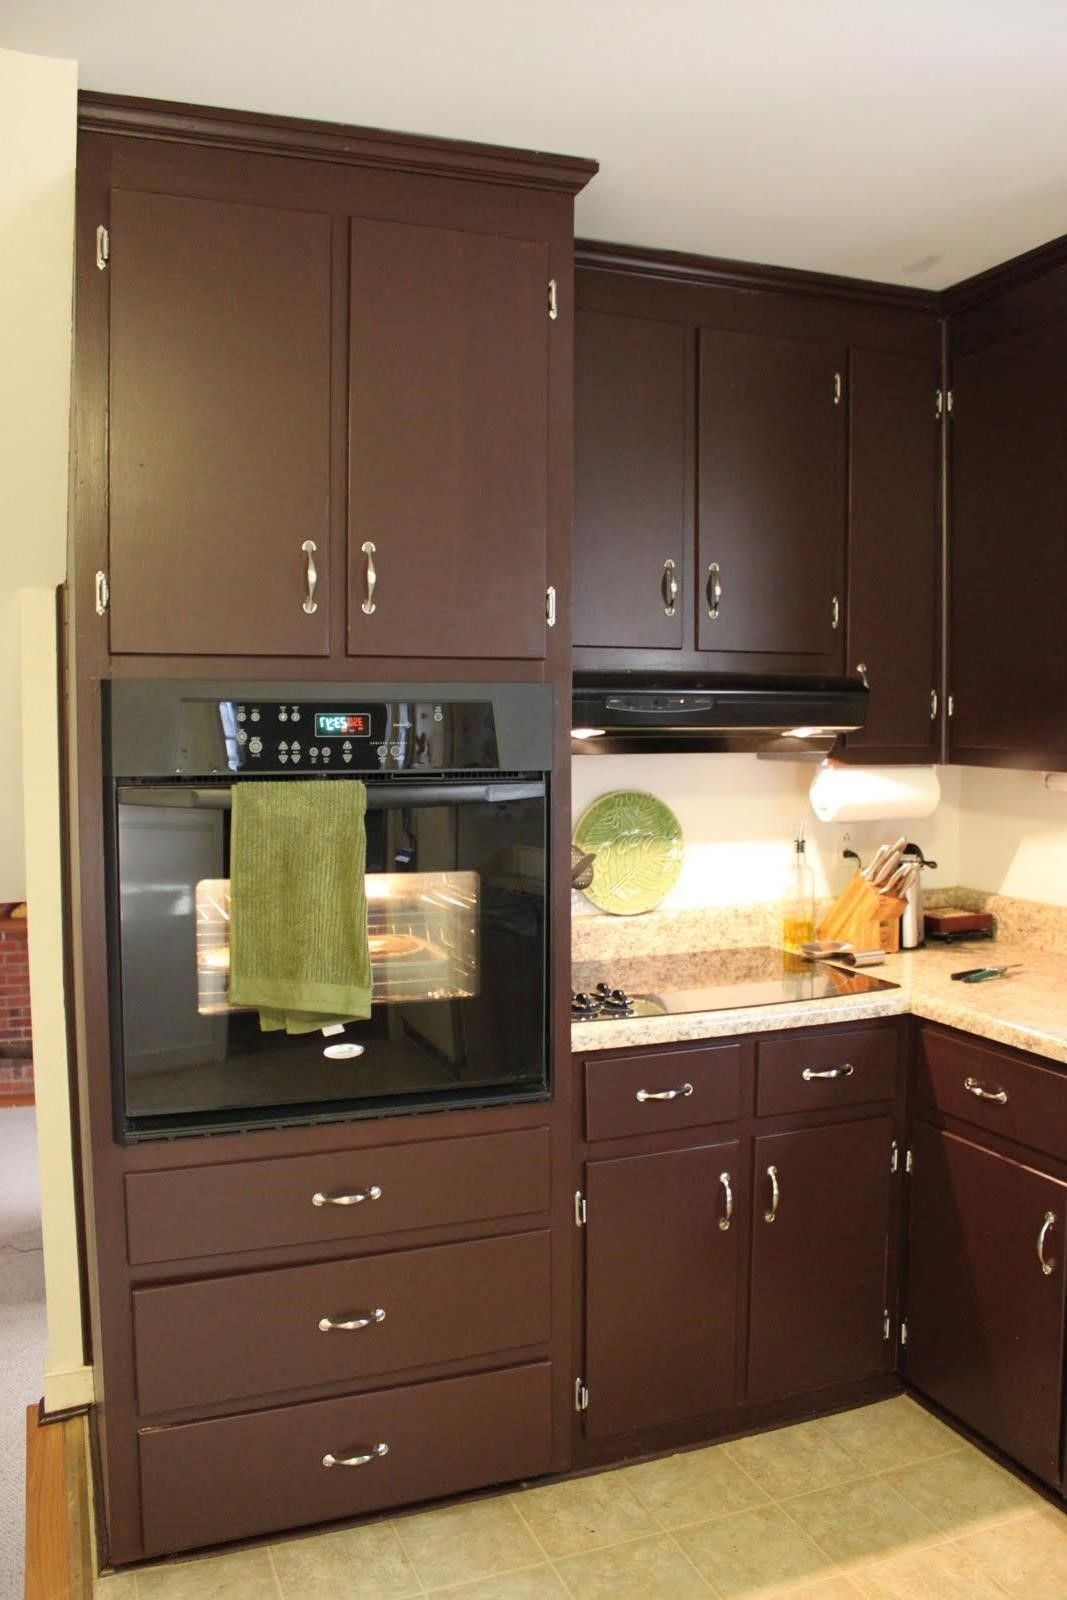 Chocolate Brown Painted Kitchen Cabinets Painting Kitchen Cabinets Wooden Cabinets Kitchen Paint